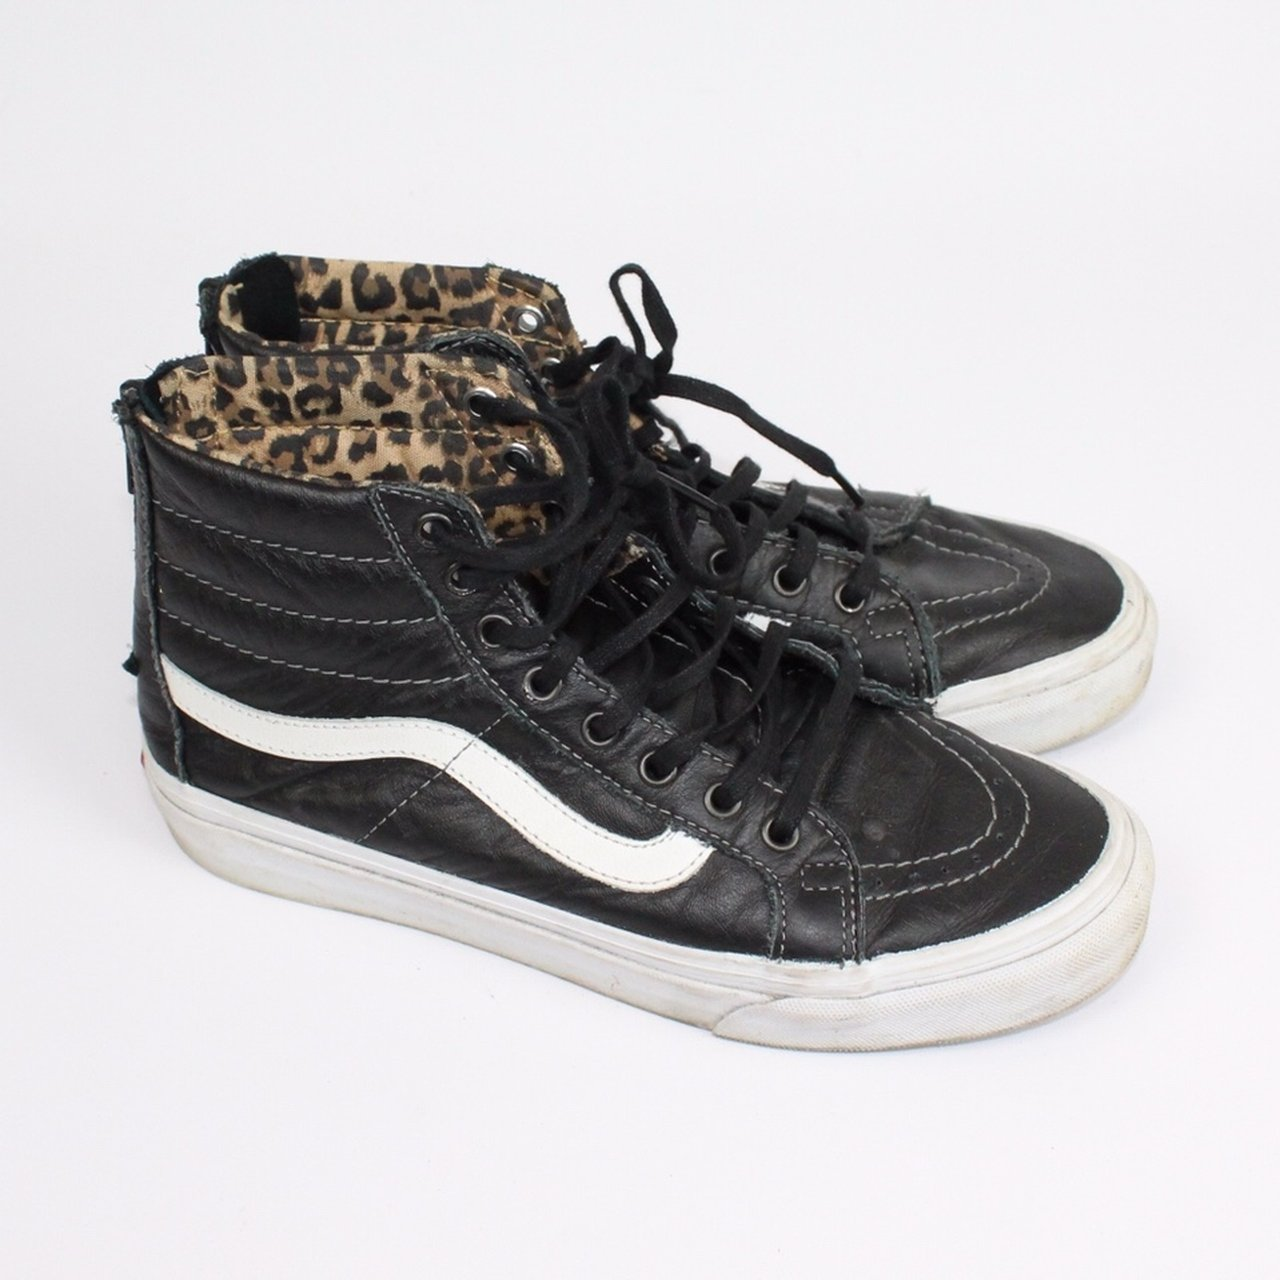 ba1dbeaeb5 Leather black and white classic high top vans Zip laces